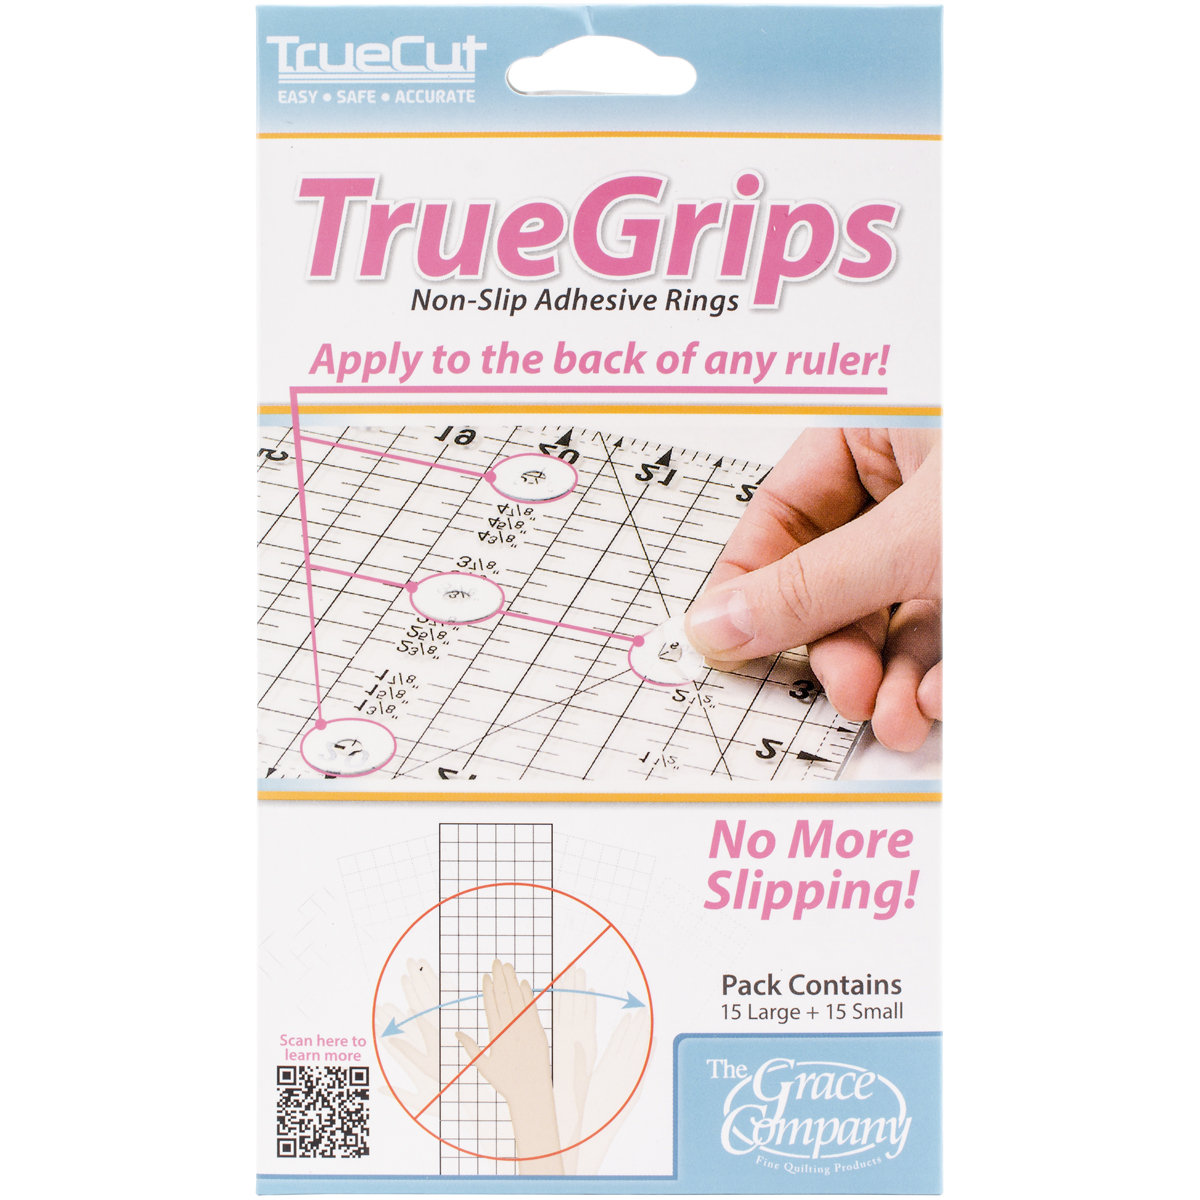 The Grace Company True Grips Non-Slip Adhesive Rings